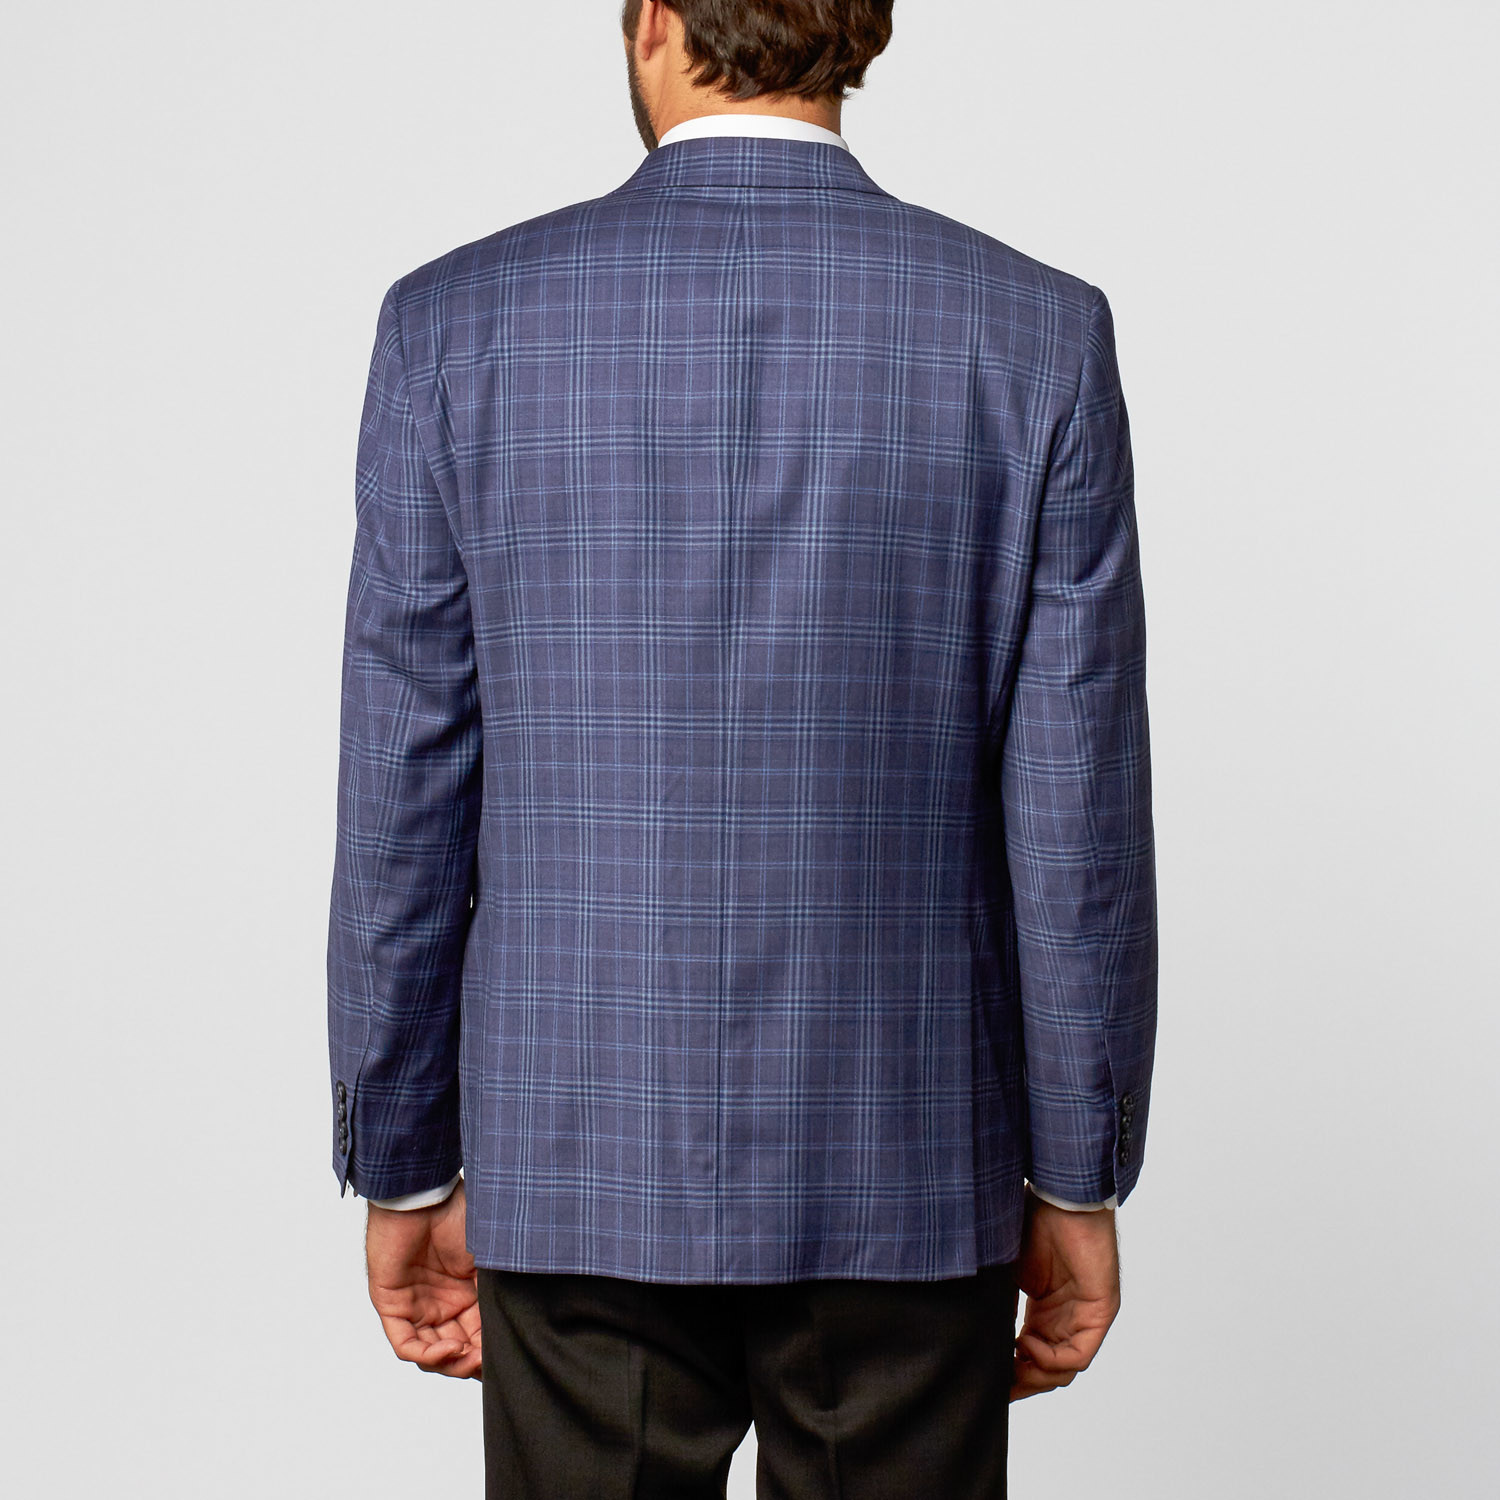 Blazers & Sport Coats. Coats & Jackets. Suits & Suit Separates. Vests. Filter; Sort By. All Items () Free Pickup; Sort by. 7 colors. Lauren Ralph Lauren Men's Classic-Fit Ultraflex Corduroy Sport Coat Lauren Ralph Lauren Men's Slim-Fit Ultraflex Stretch Light Blue Tic Suit Jacket.